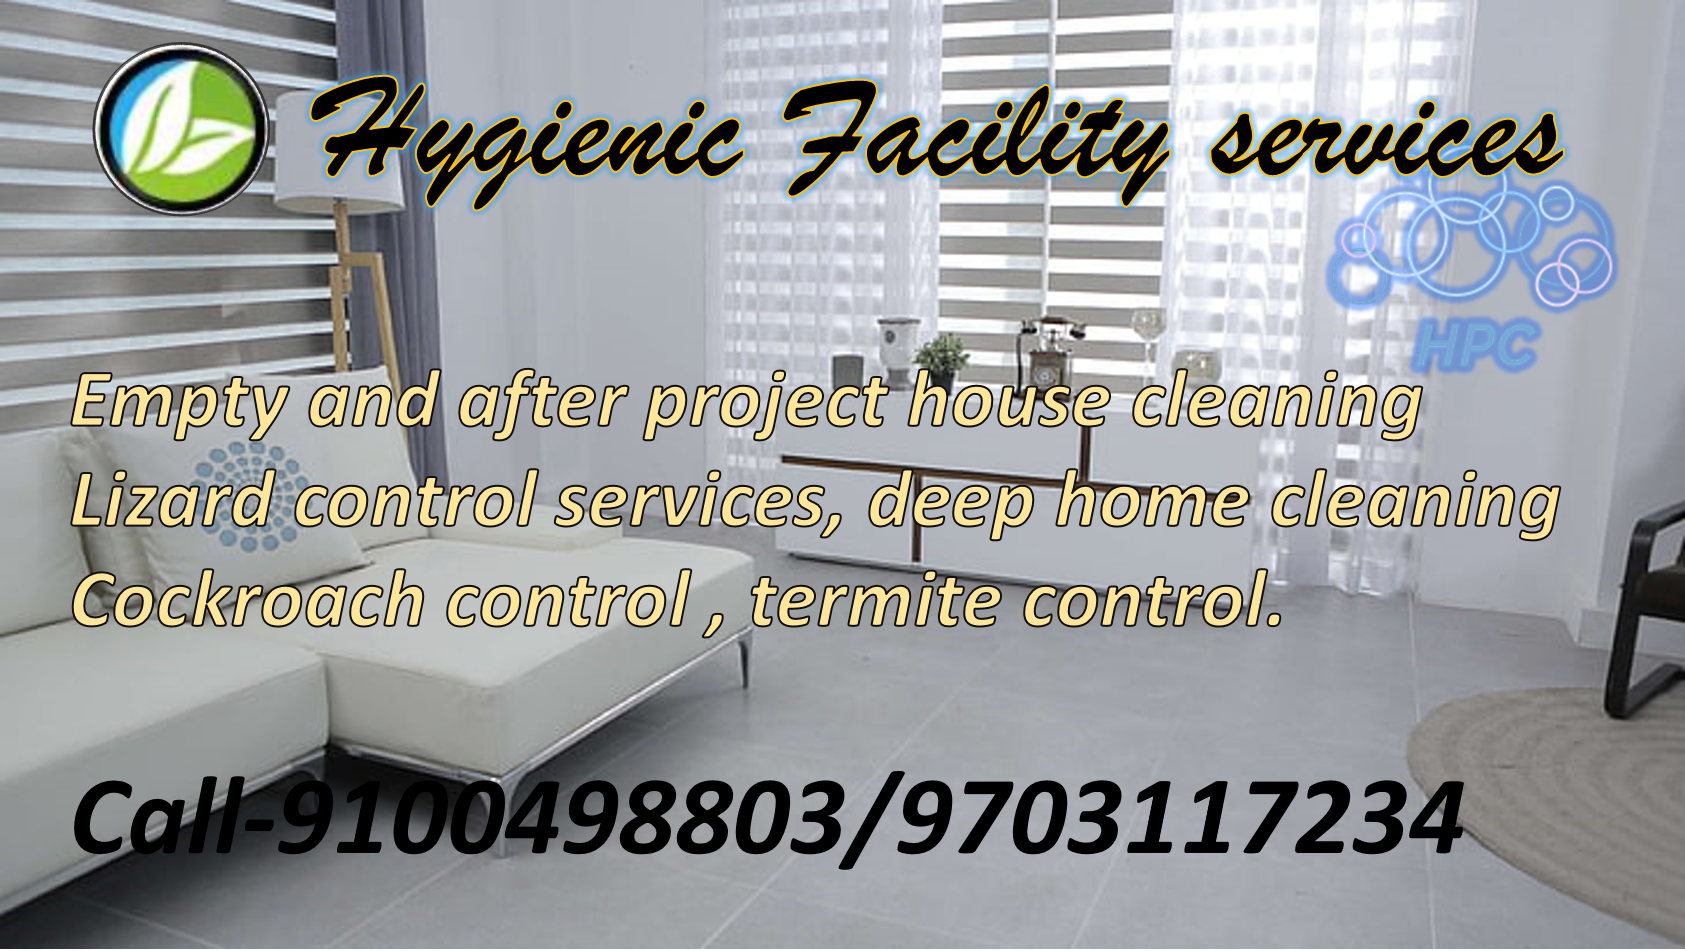 pest control services in kukatpally